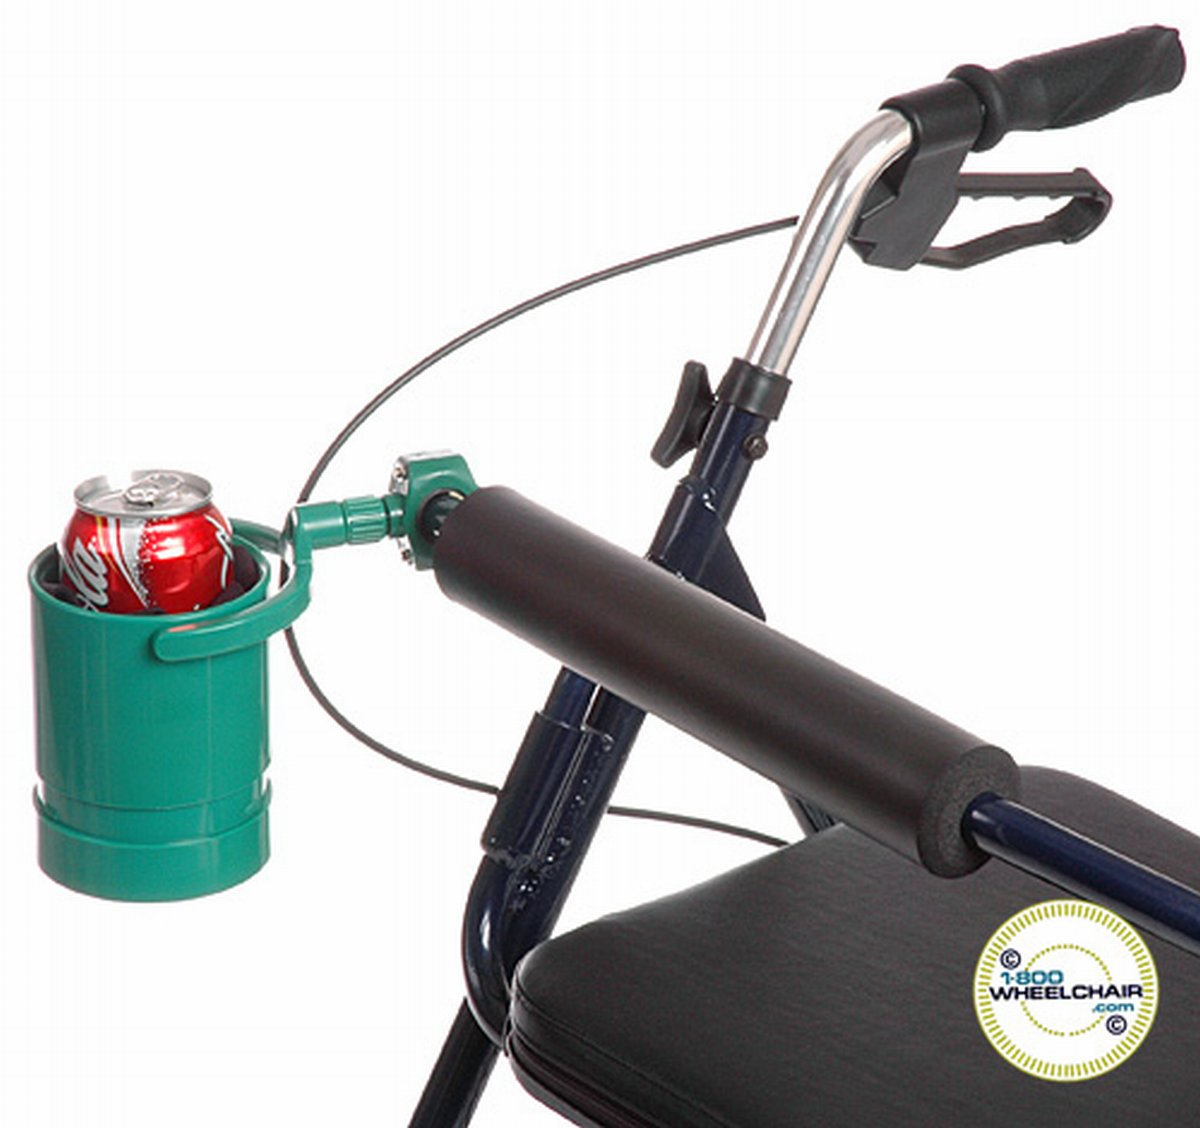 Wheelchair Drink Holder - Swiveling & Expandable Cup - Broadened Horizons Direct